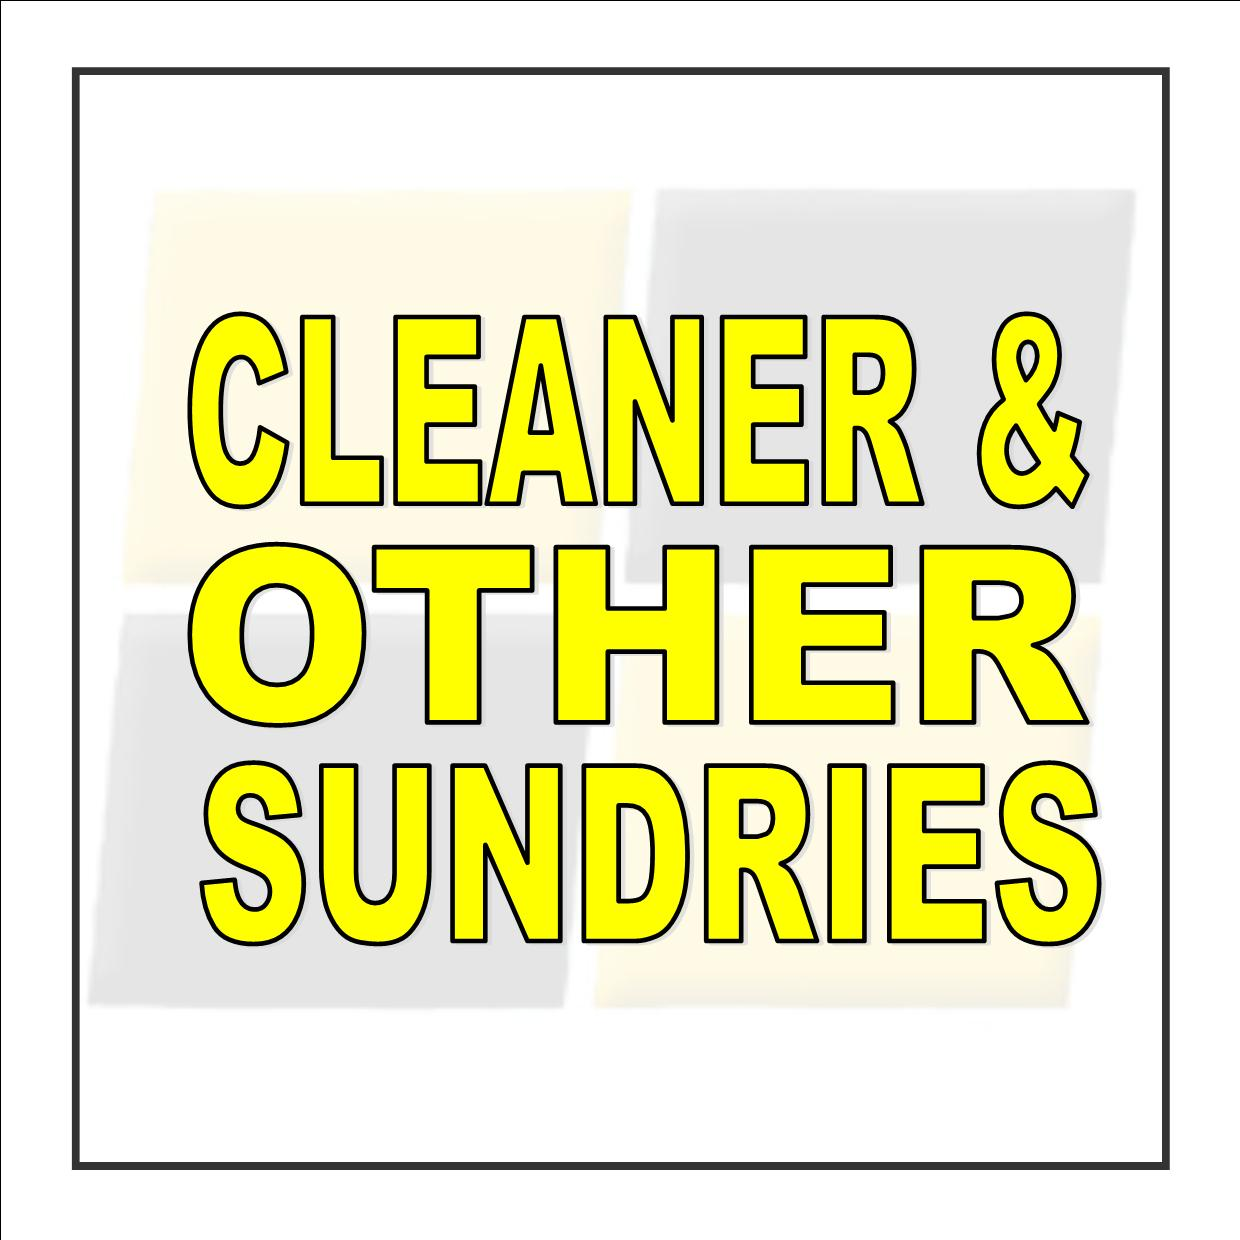 Cleaner & Other Sundries